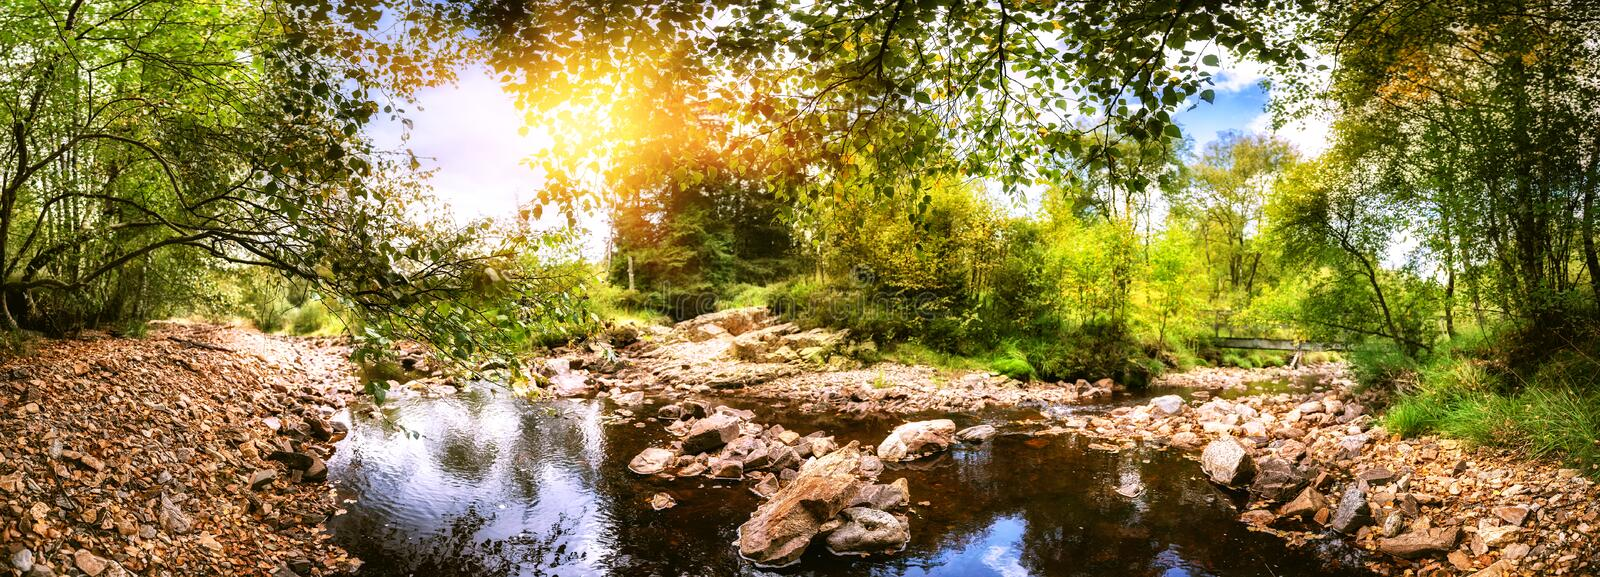 Panoramic summer landscape with forest stream stock images